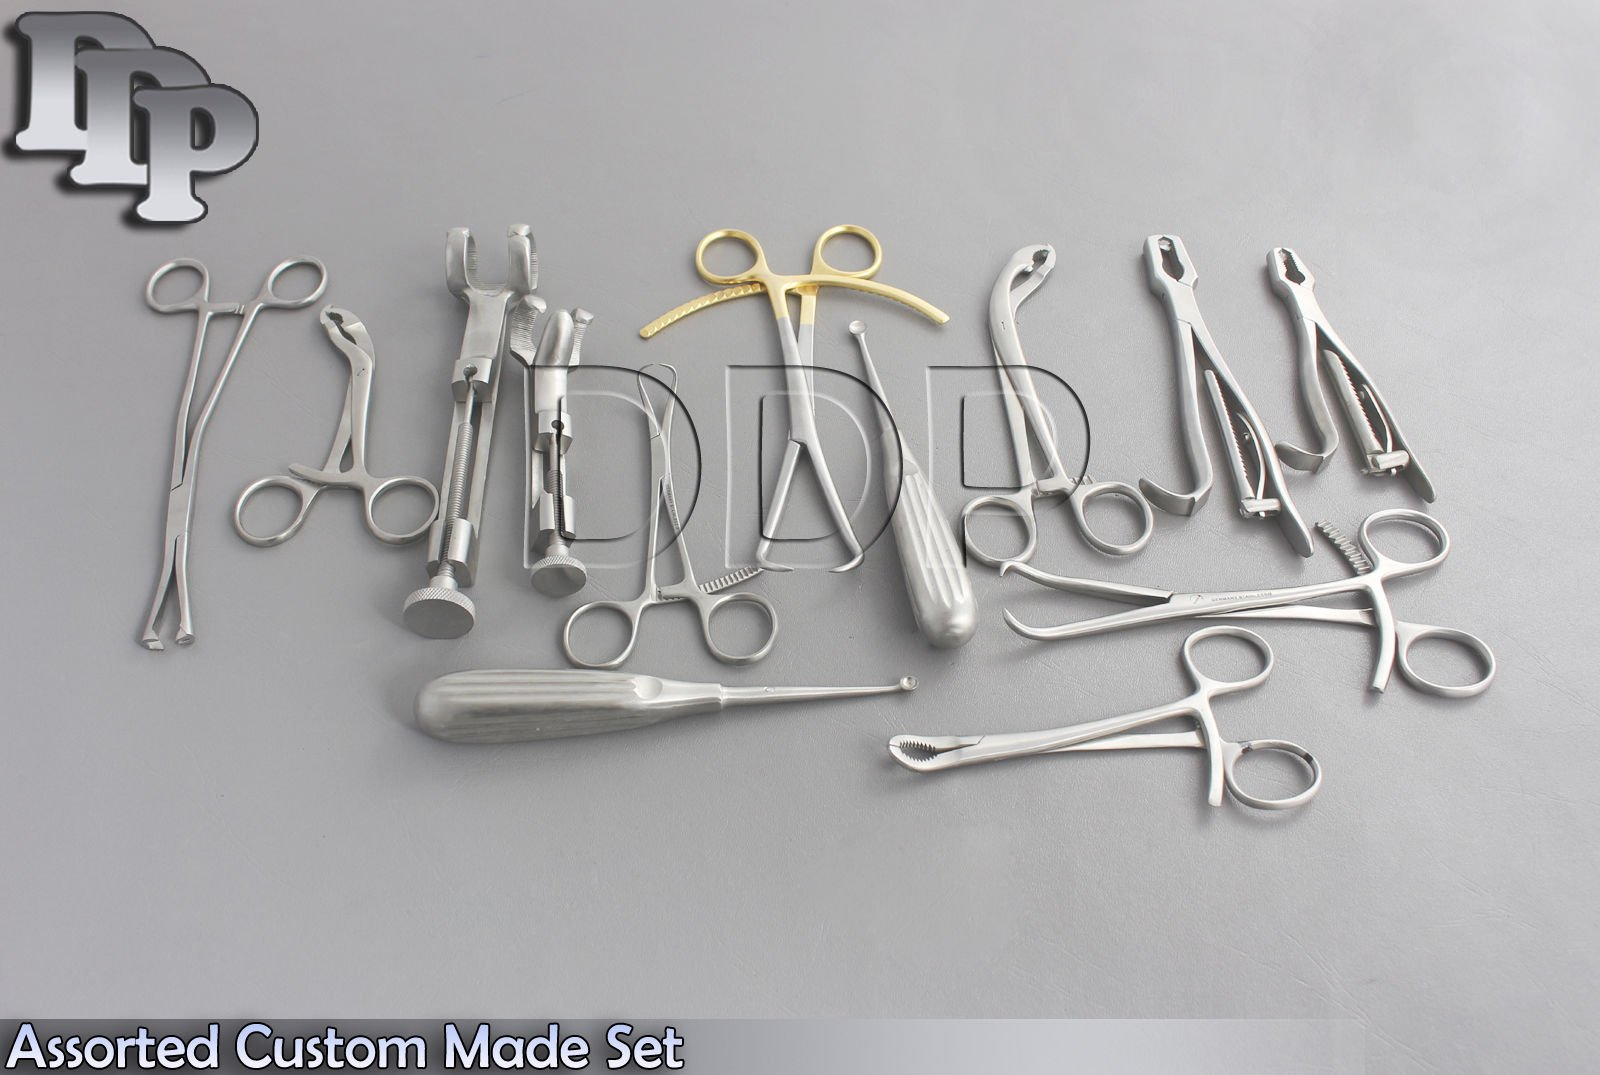 DDP 14 ASSORTED ORTHOPEDIC CUSTOM MADE SET,SR-531